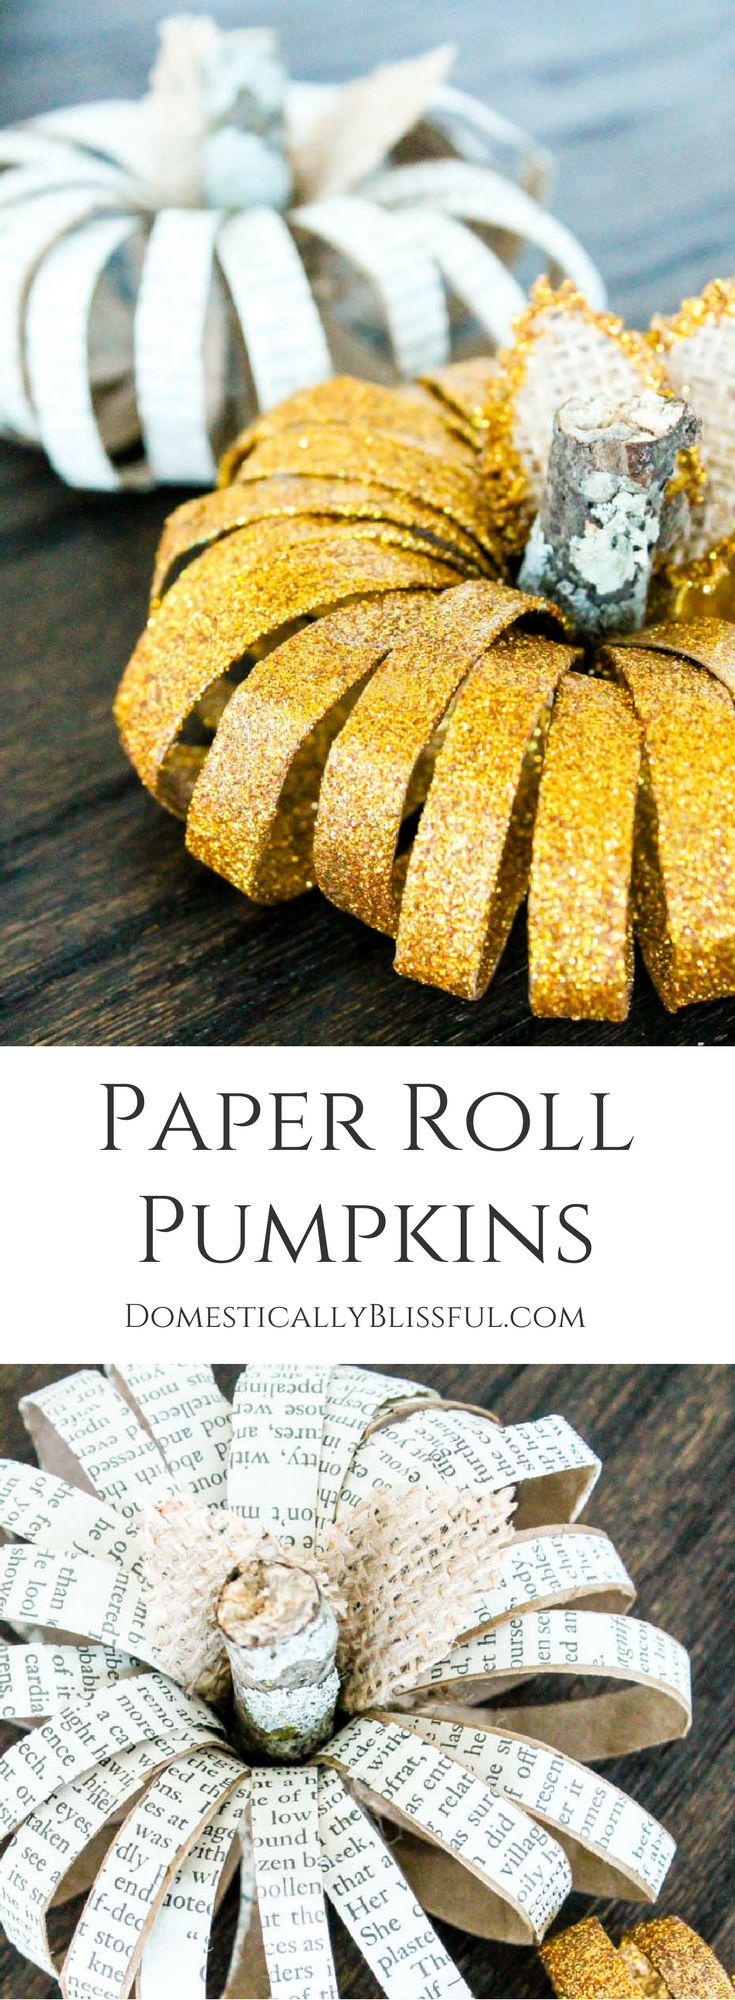 Paper Roll Pumpkins are a simple fall decor craft that can be created by repurposing items you already have at home!